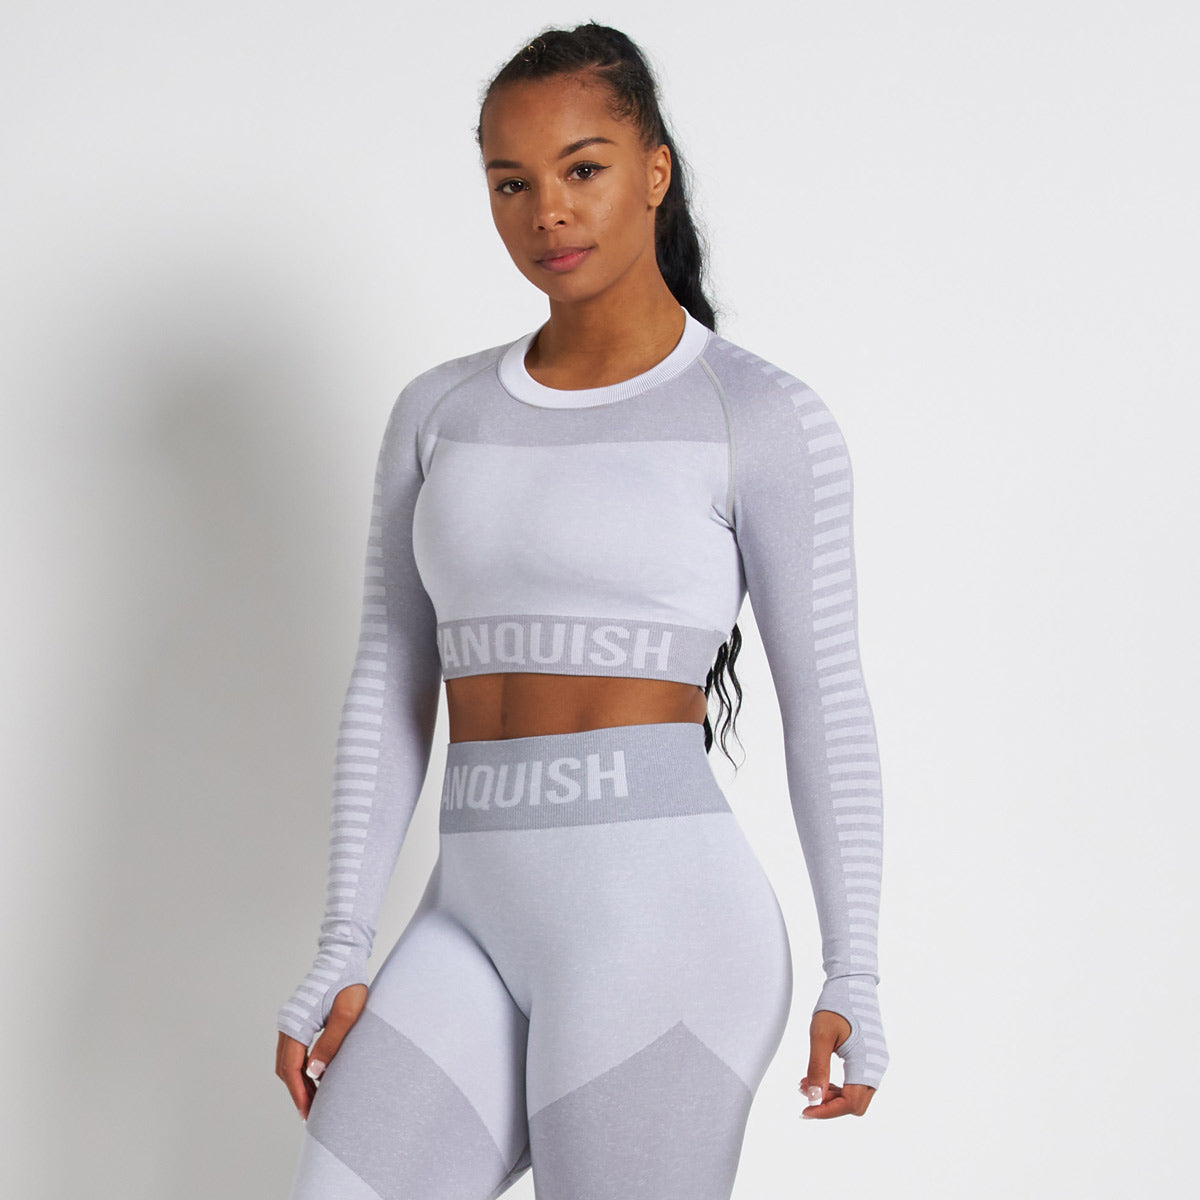 Vanquish Allure White Seamless Long Sleeve Crop Top